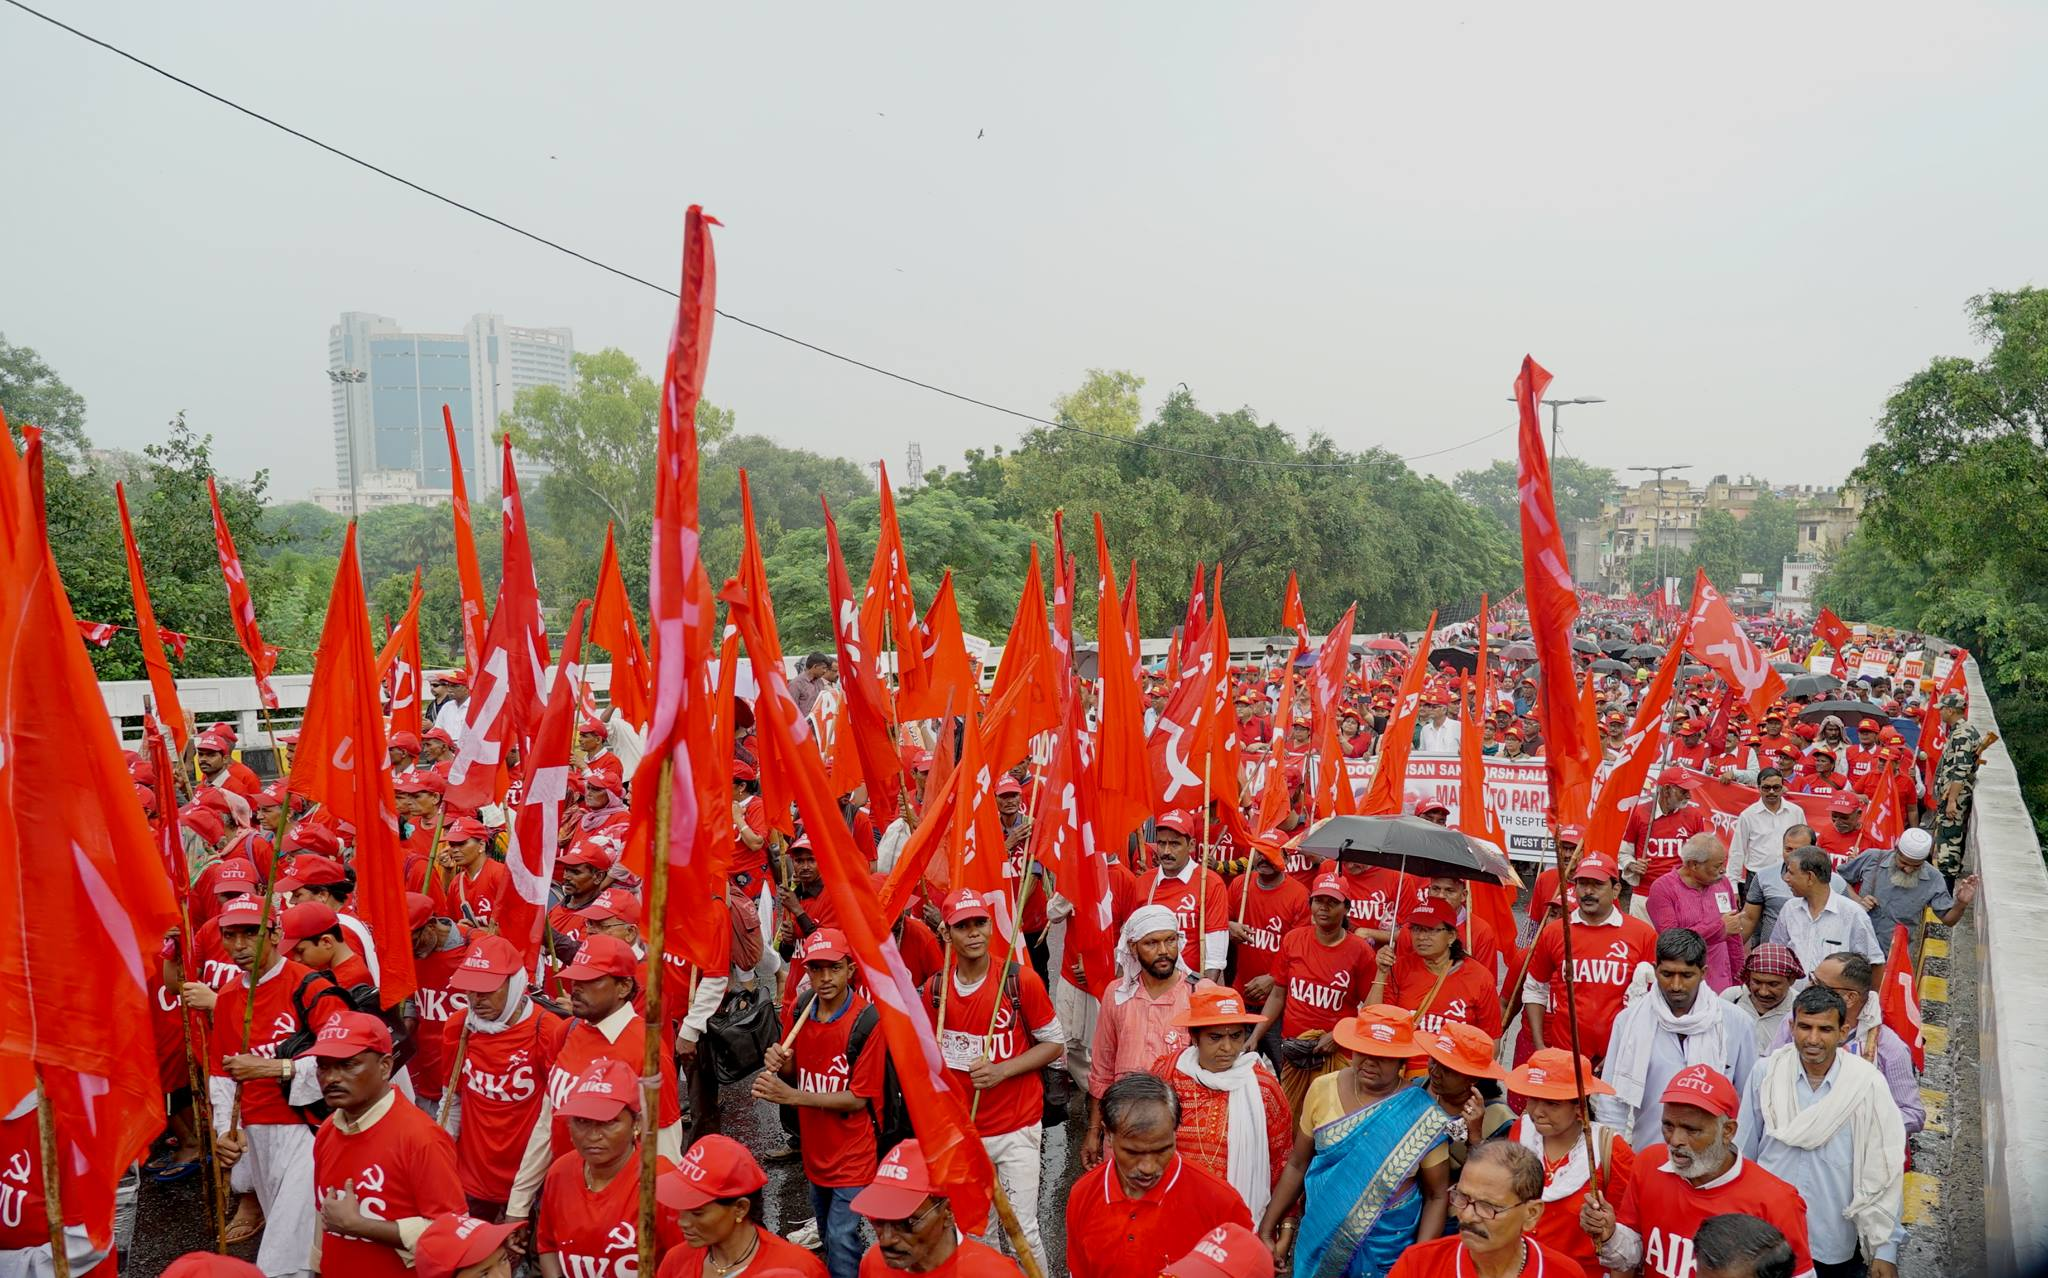 Farmers march in New Delhi 2018